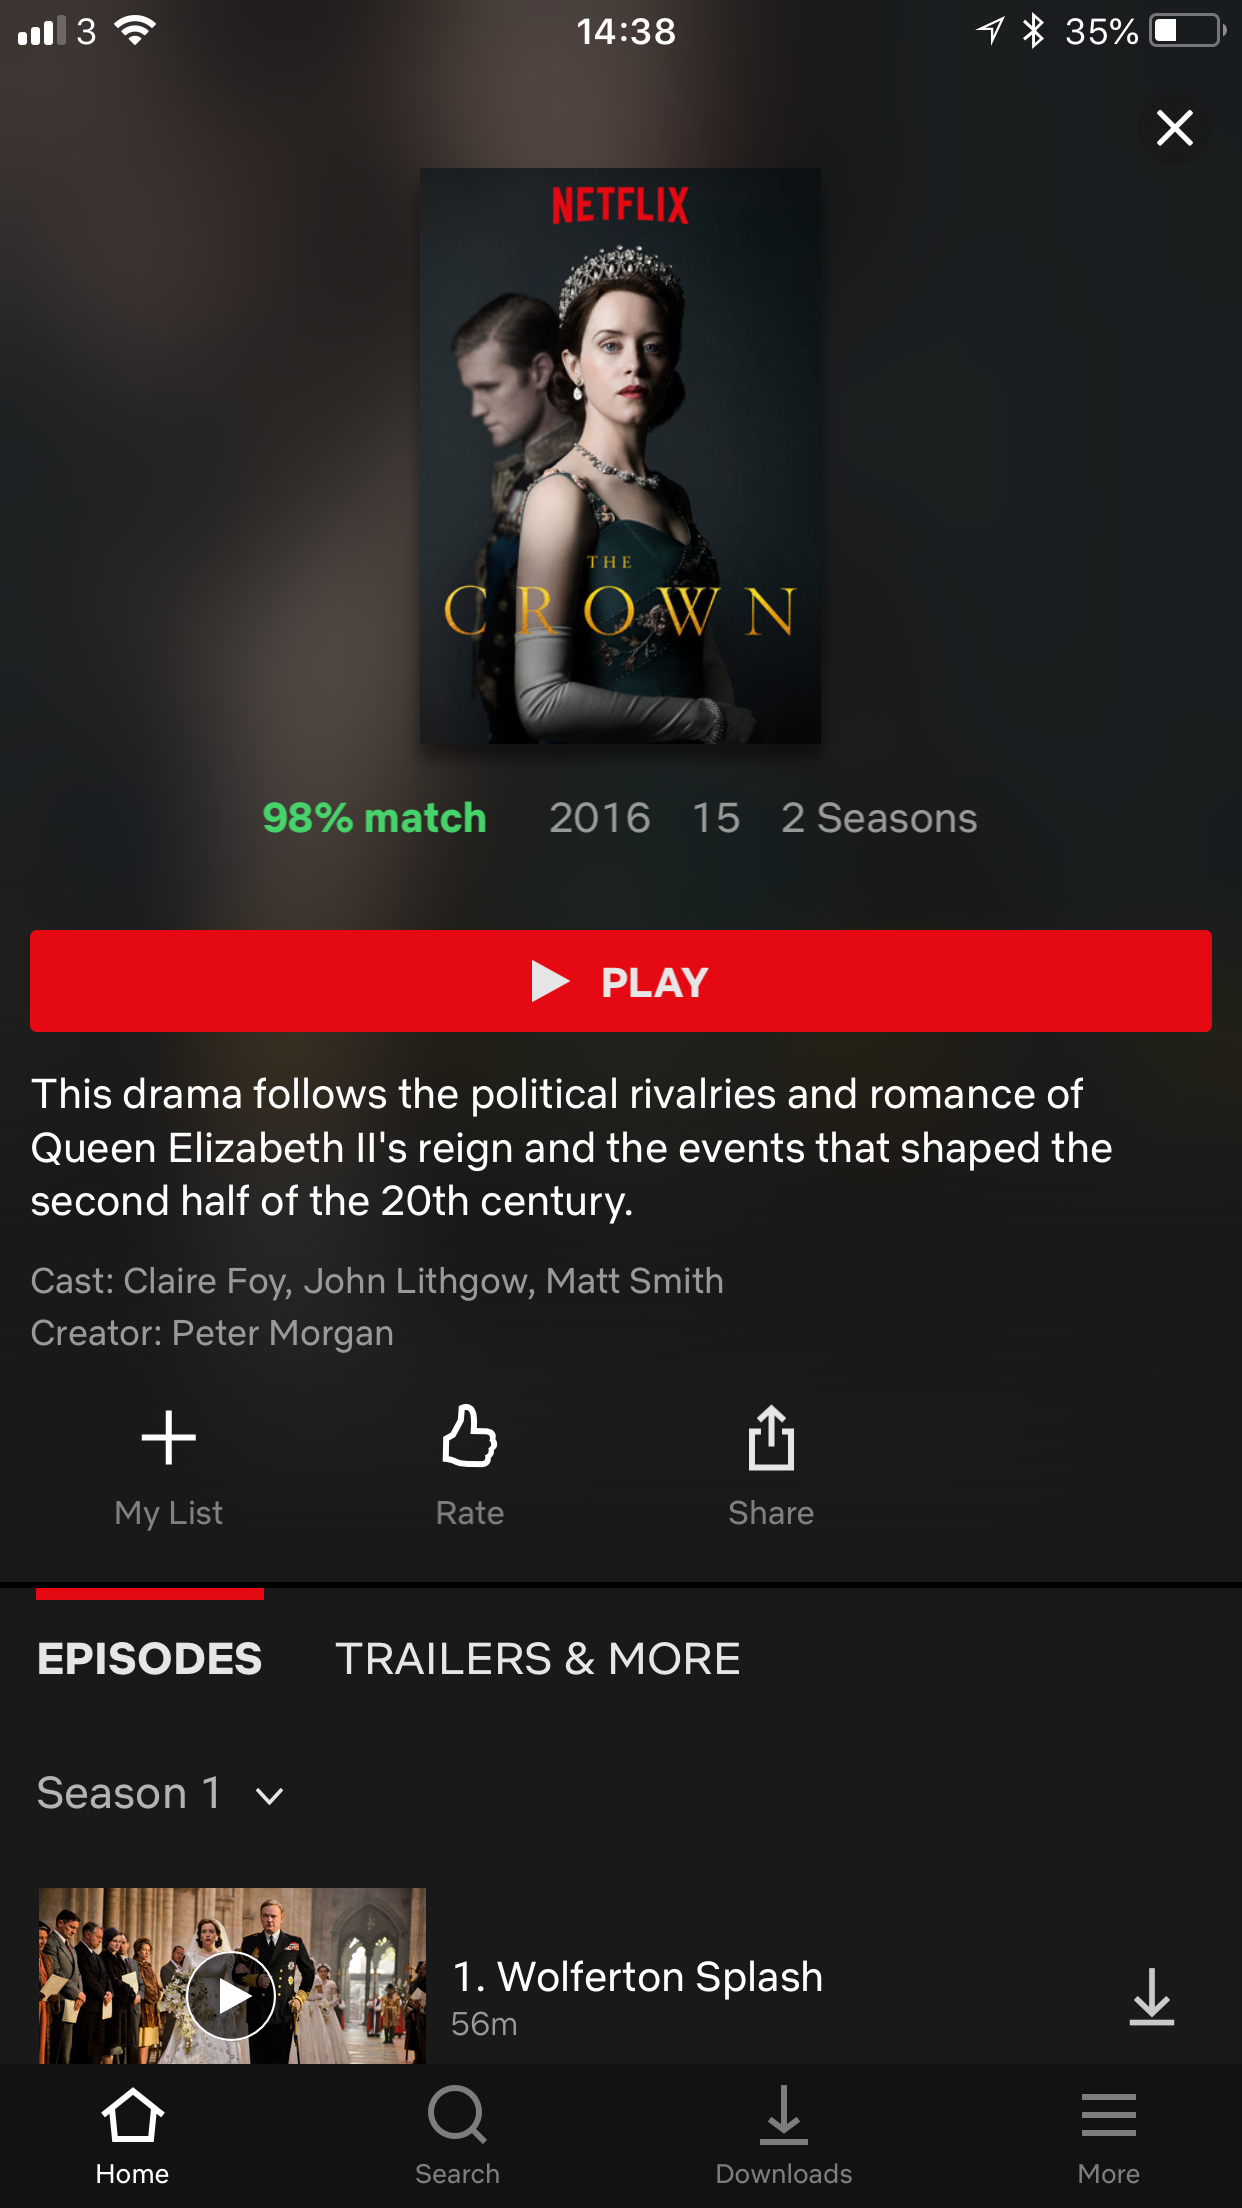 Netflix programme selection screen The Crown